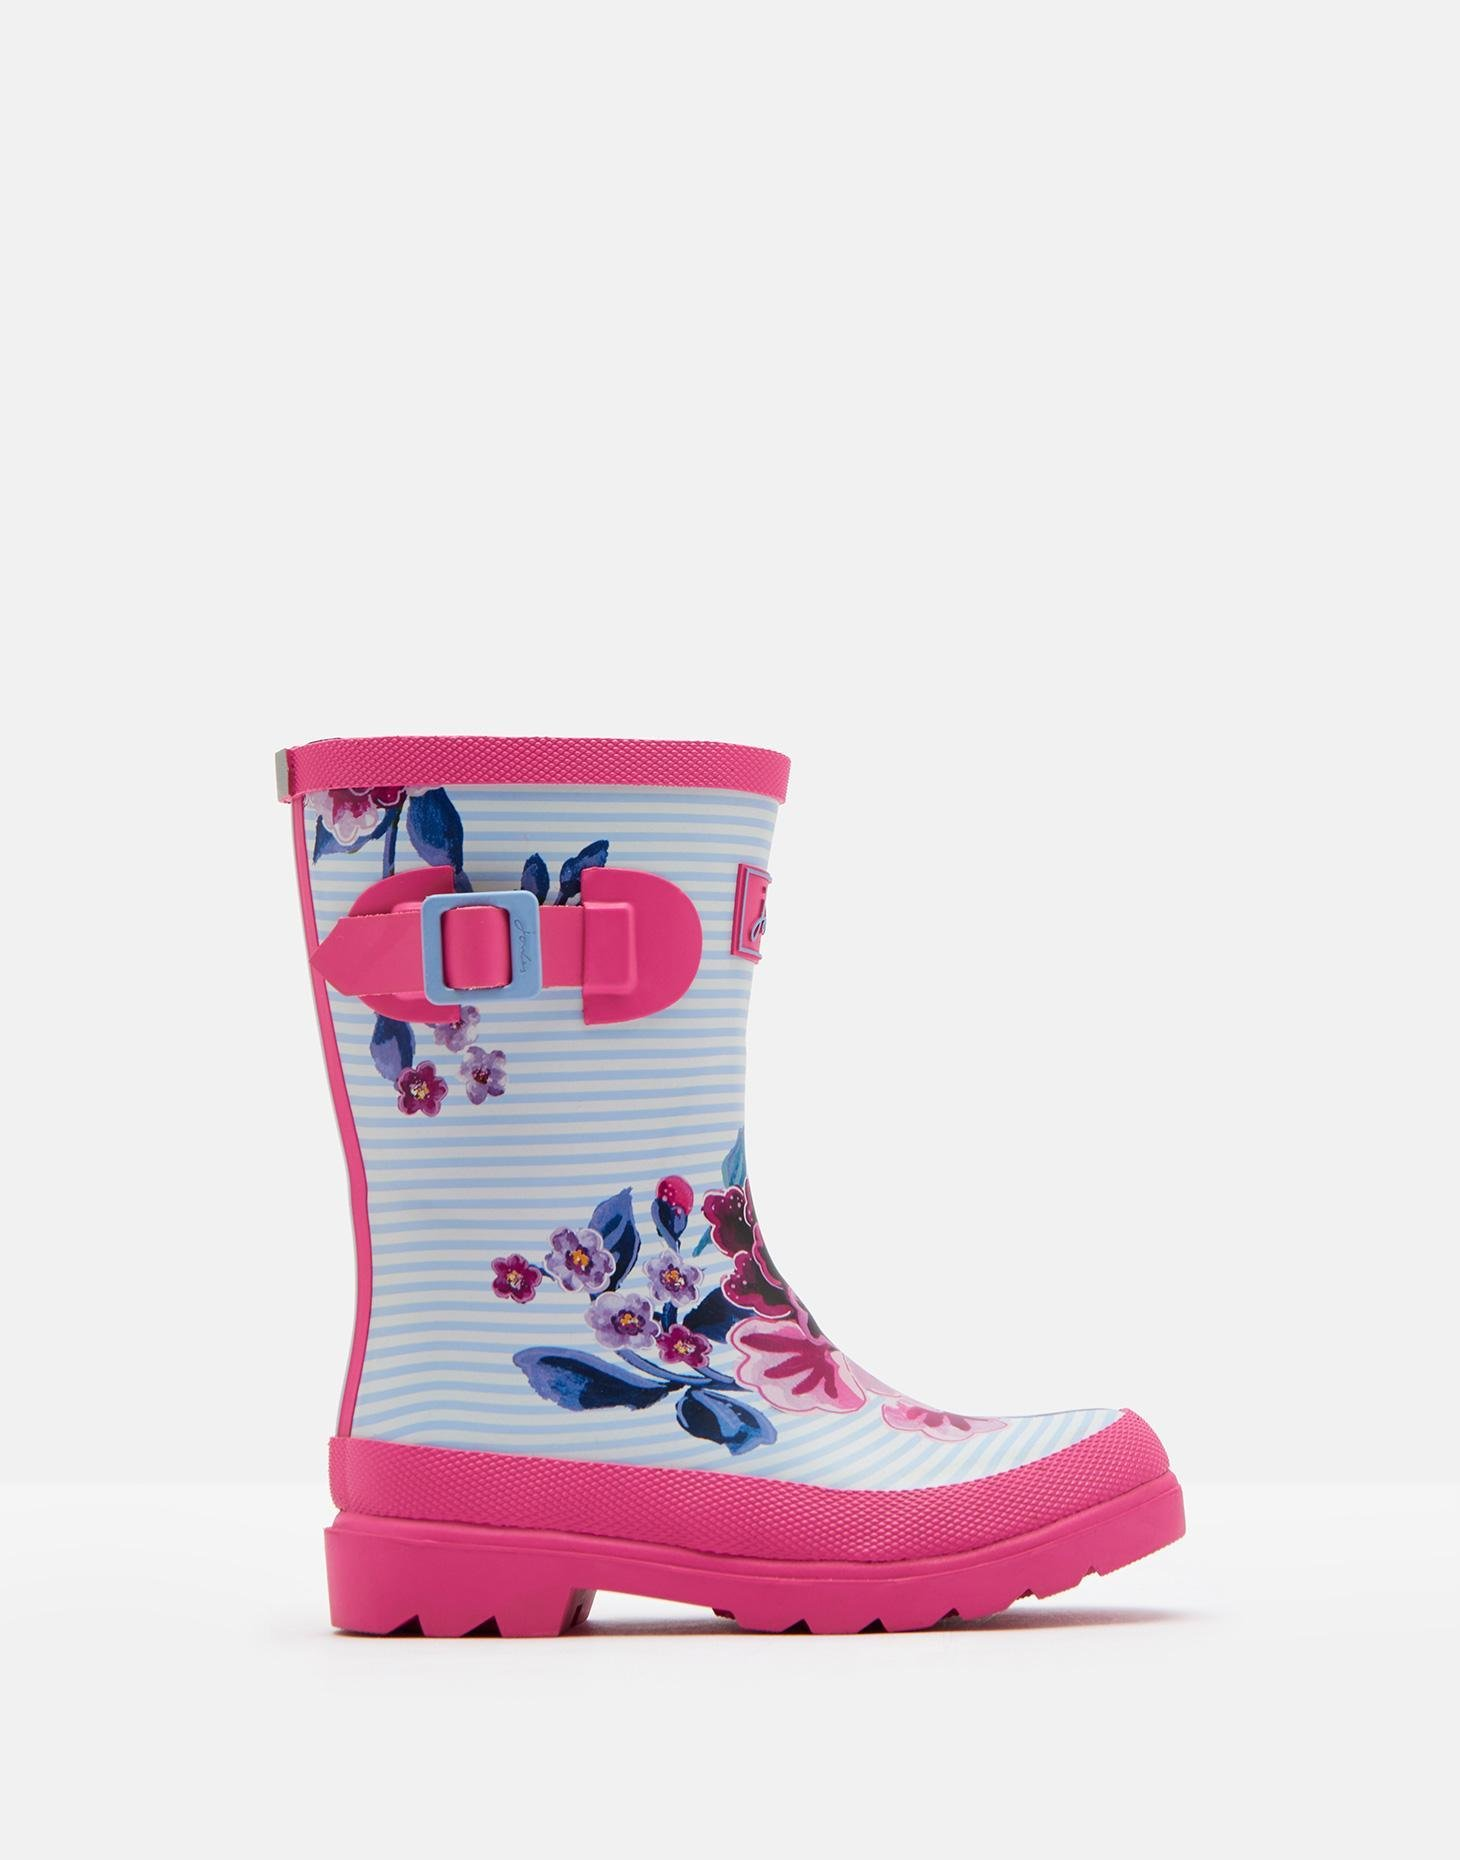 Joules Kids Baby Girl's Printed Welly Rain Boot (Toddler/Little Kid/Big Kid) Sky Blue Chinoiserie Floral 1 M US Little Kid